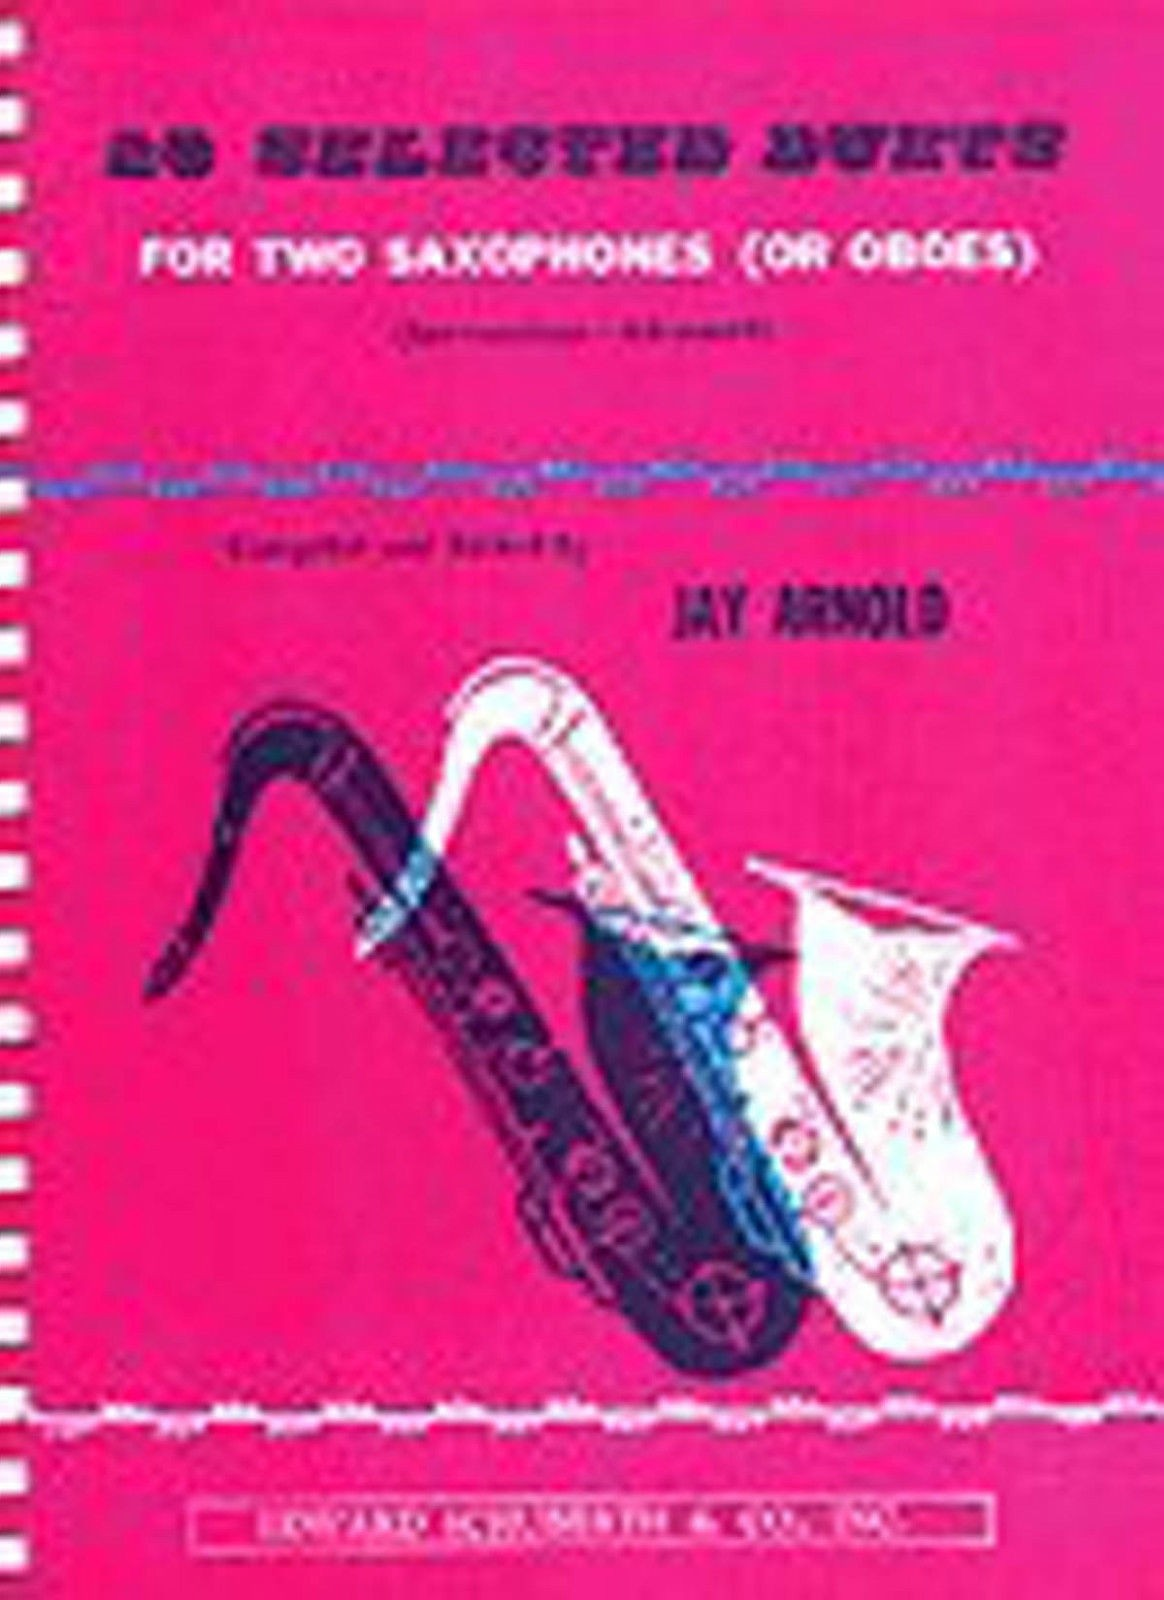 28 Selected Duets for Two Saxophones or Oboes Arnold Advanced Sheet Music B51